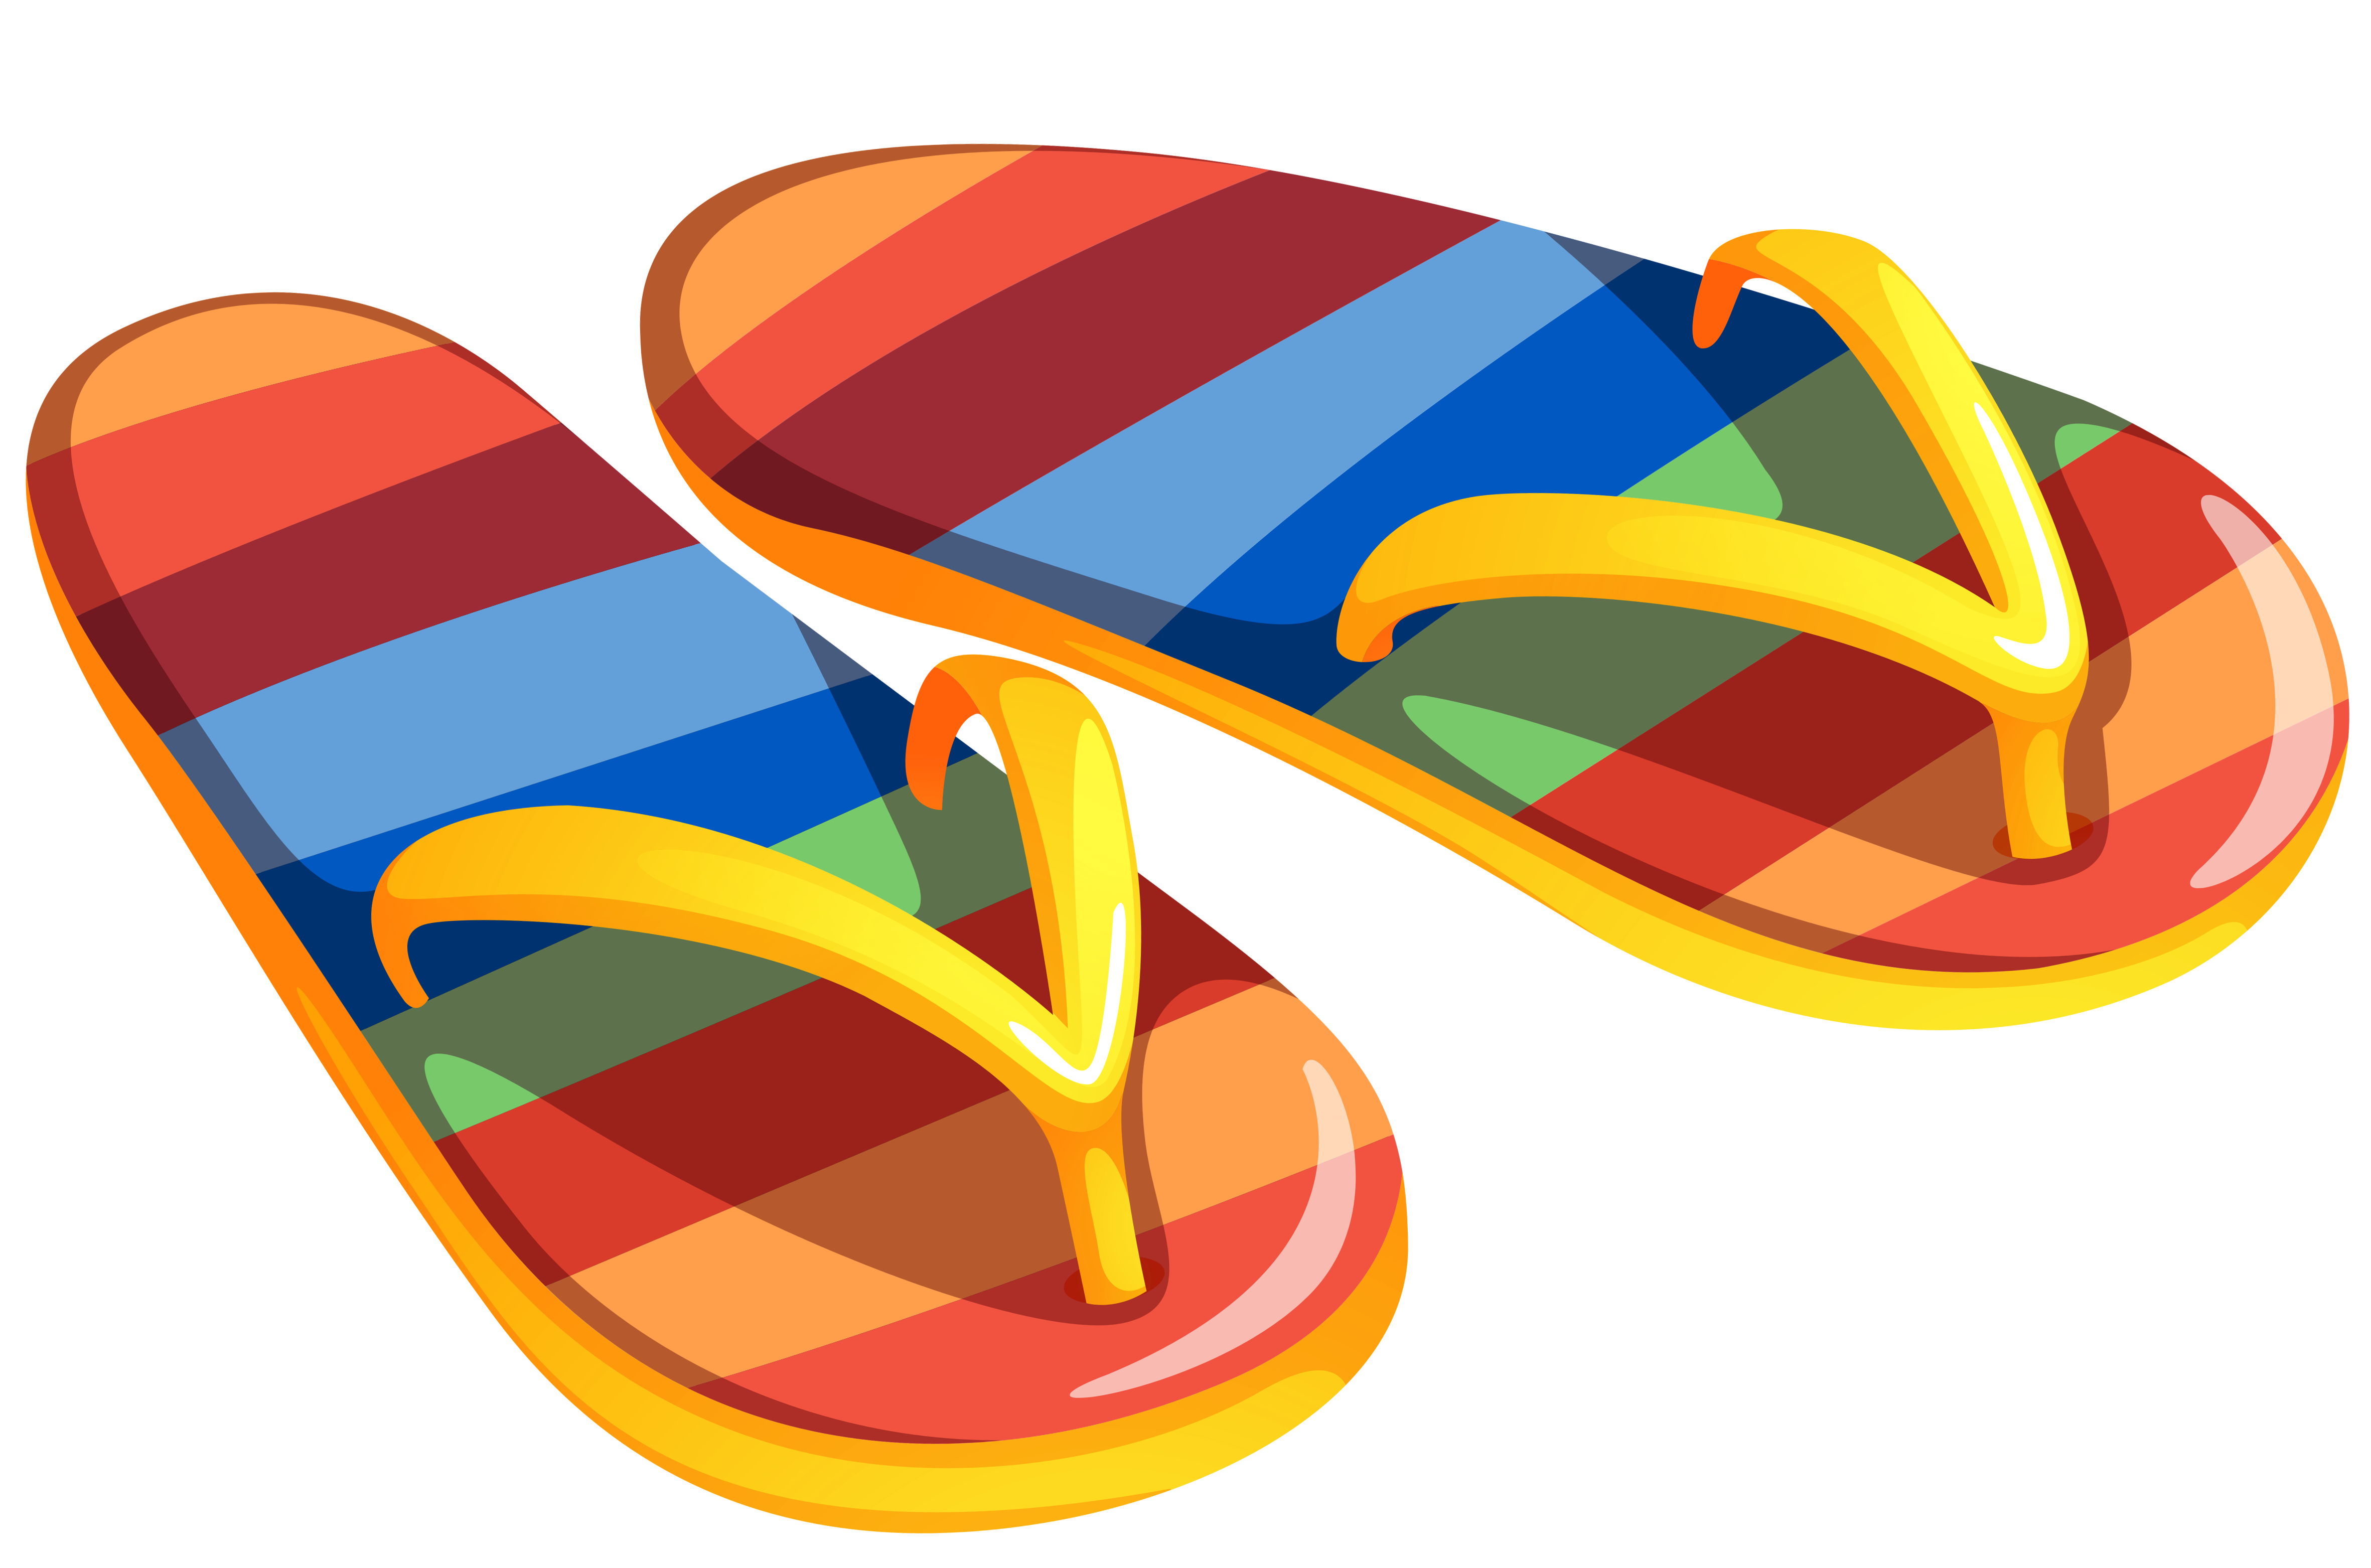 Clipart flip flops on clip art and free